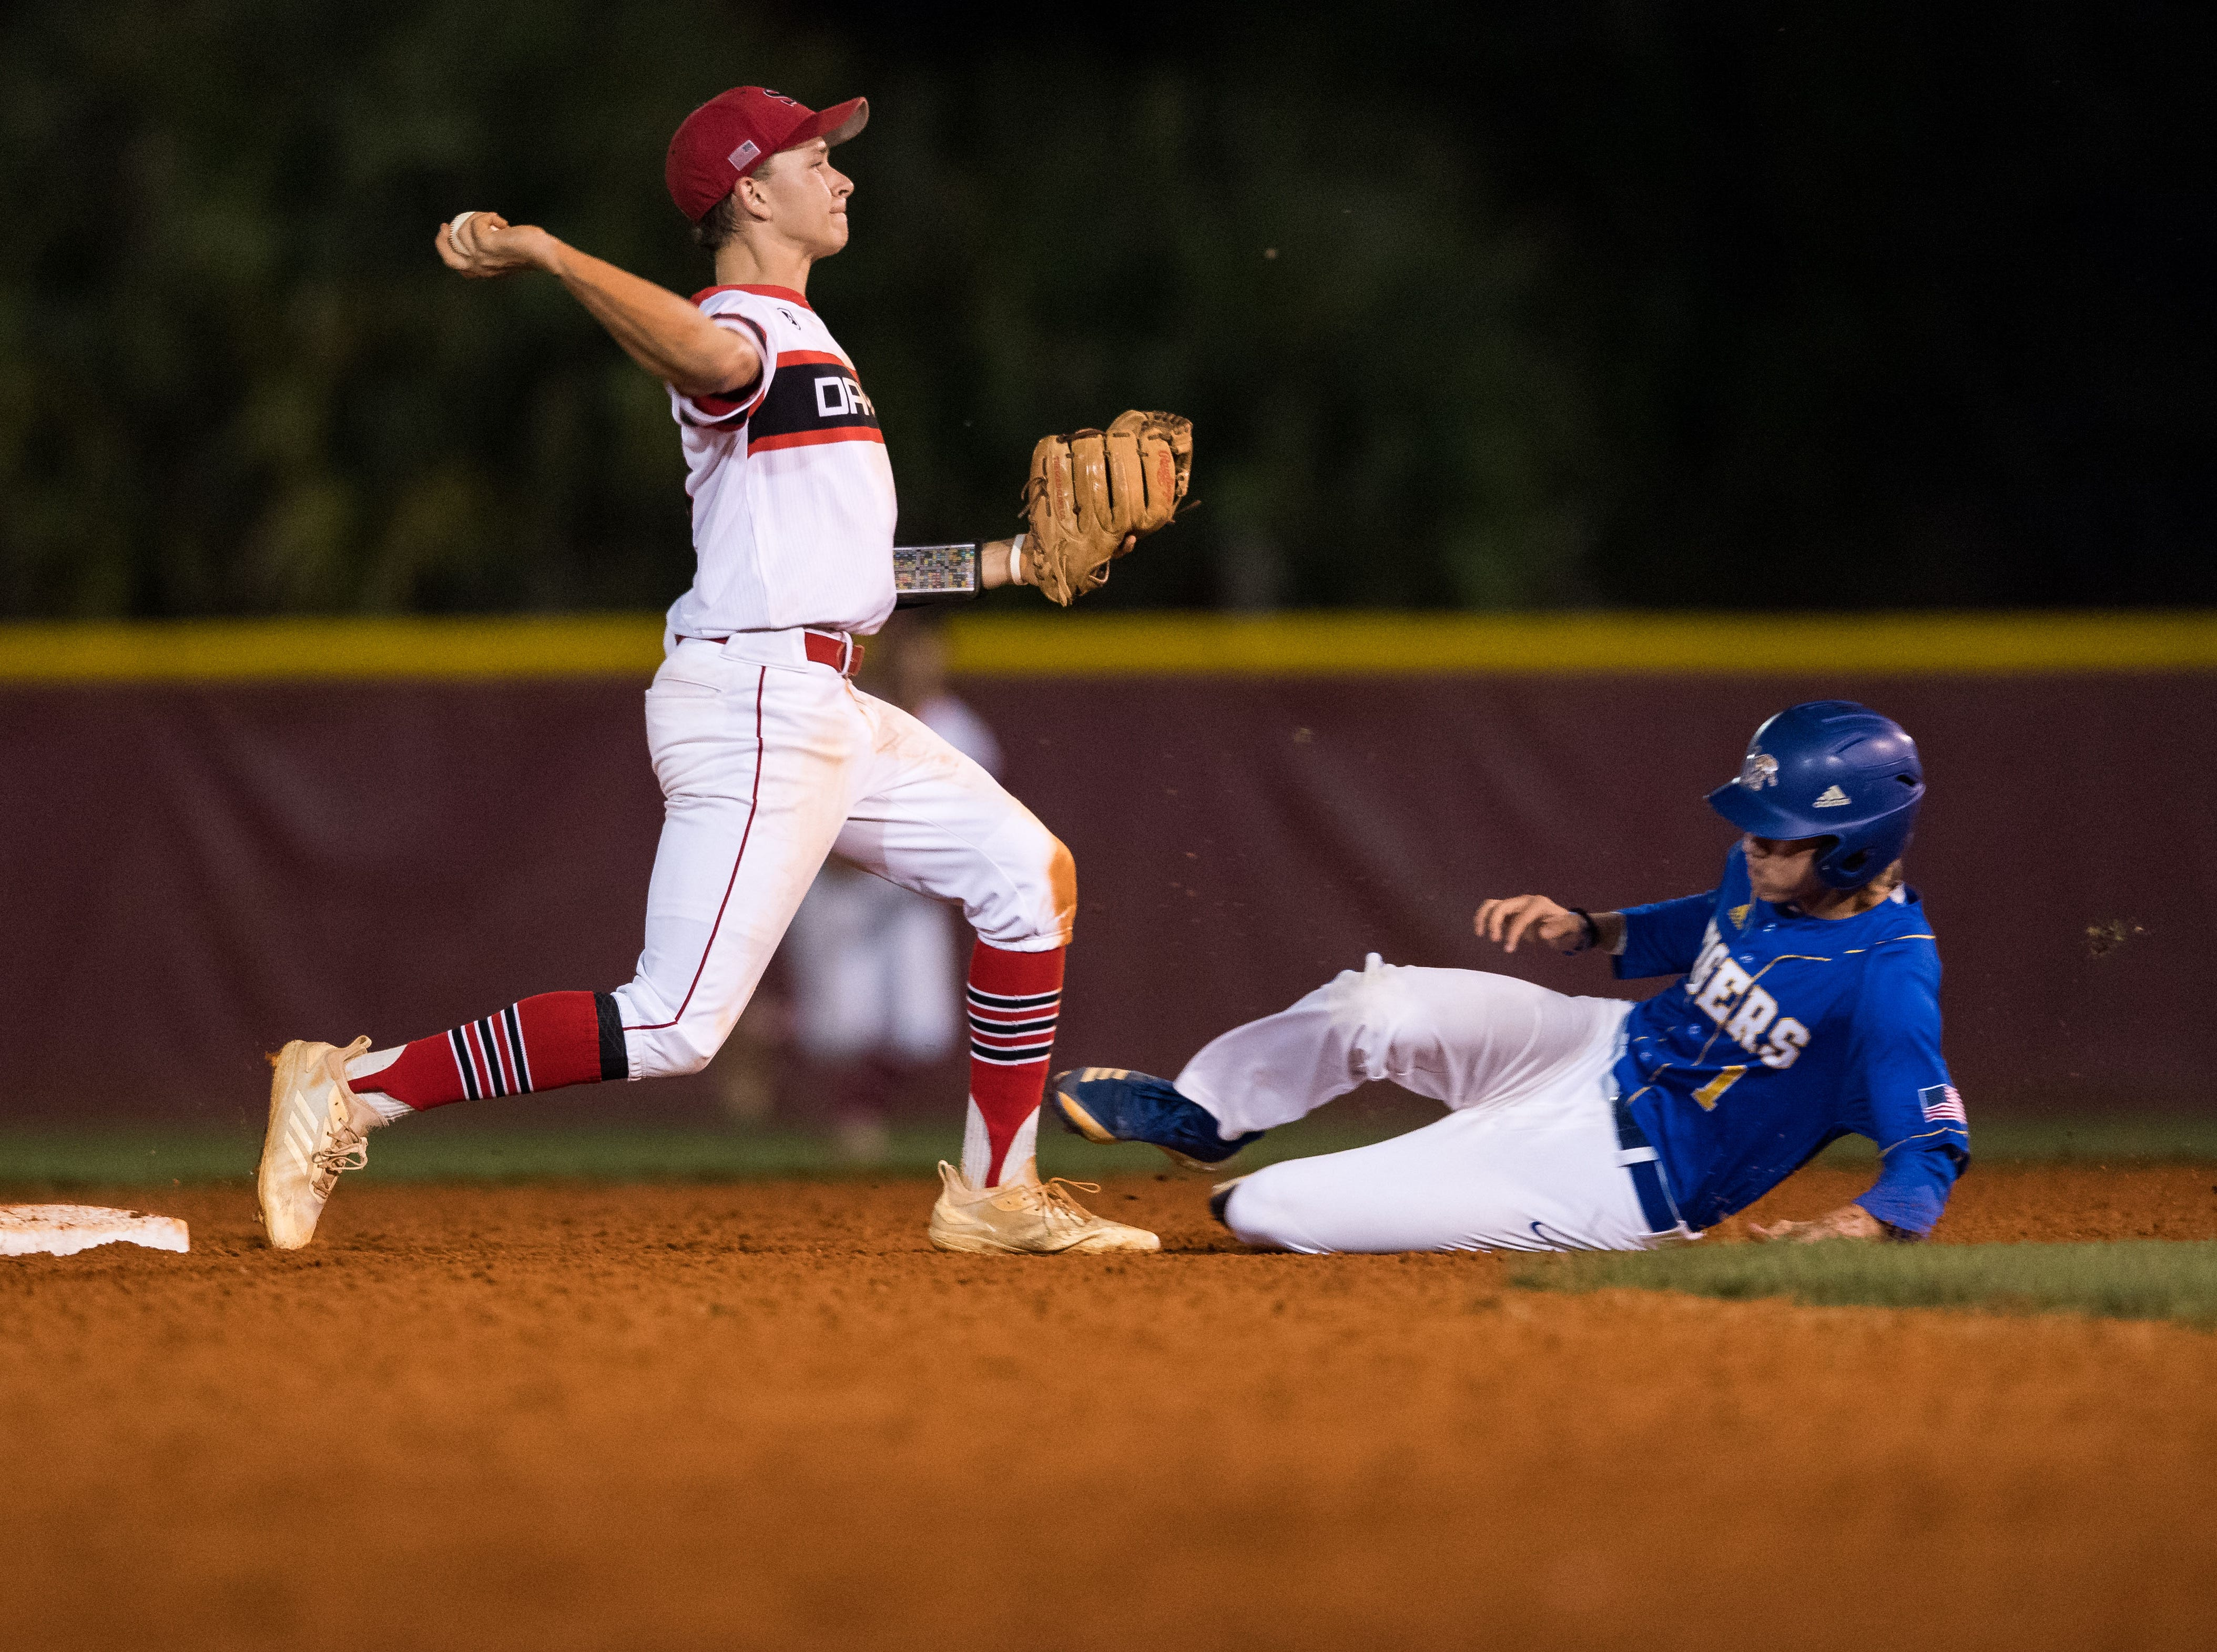 South Fork second-baseman Tim Kudlinski (left) throws to first after forcing Martin County's Damon Blinde out at second, making a double play due to an interference call, to end the top of the fifth inning at the 2019 Robbie Souza Classic high school baseball game Friday, March 22, 2019, at South Fork High School in Tropical Farms. Martin County won, 5-1.